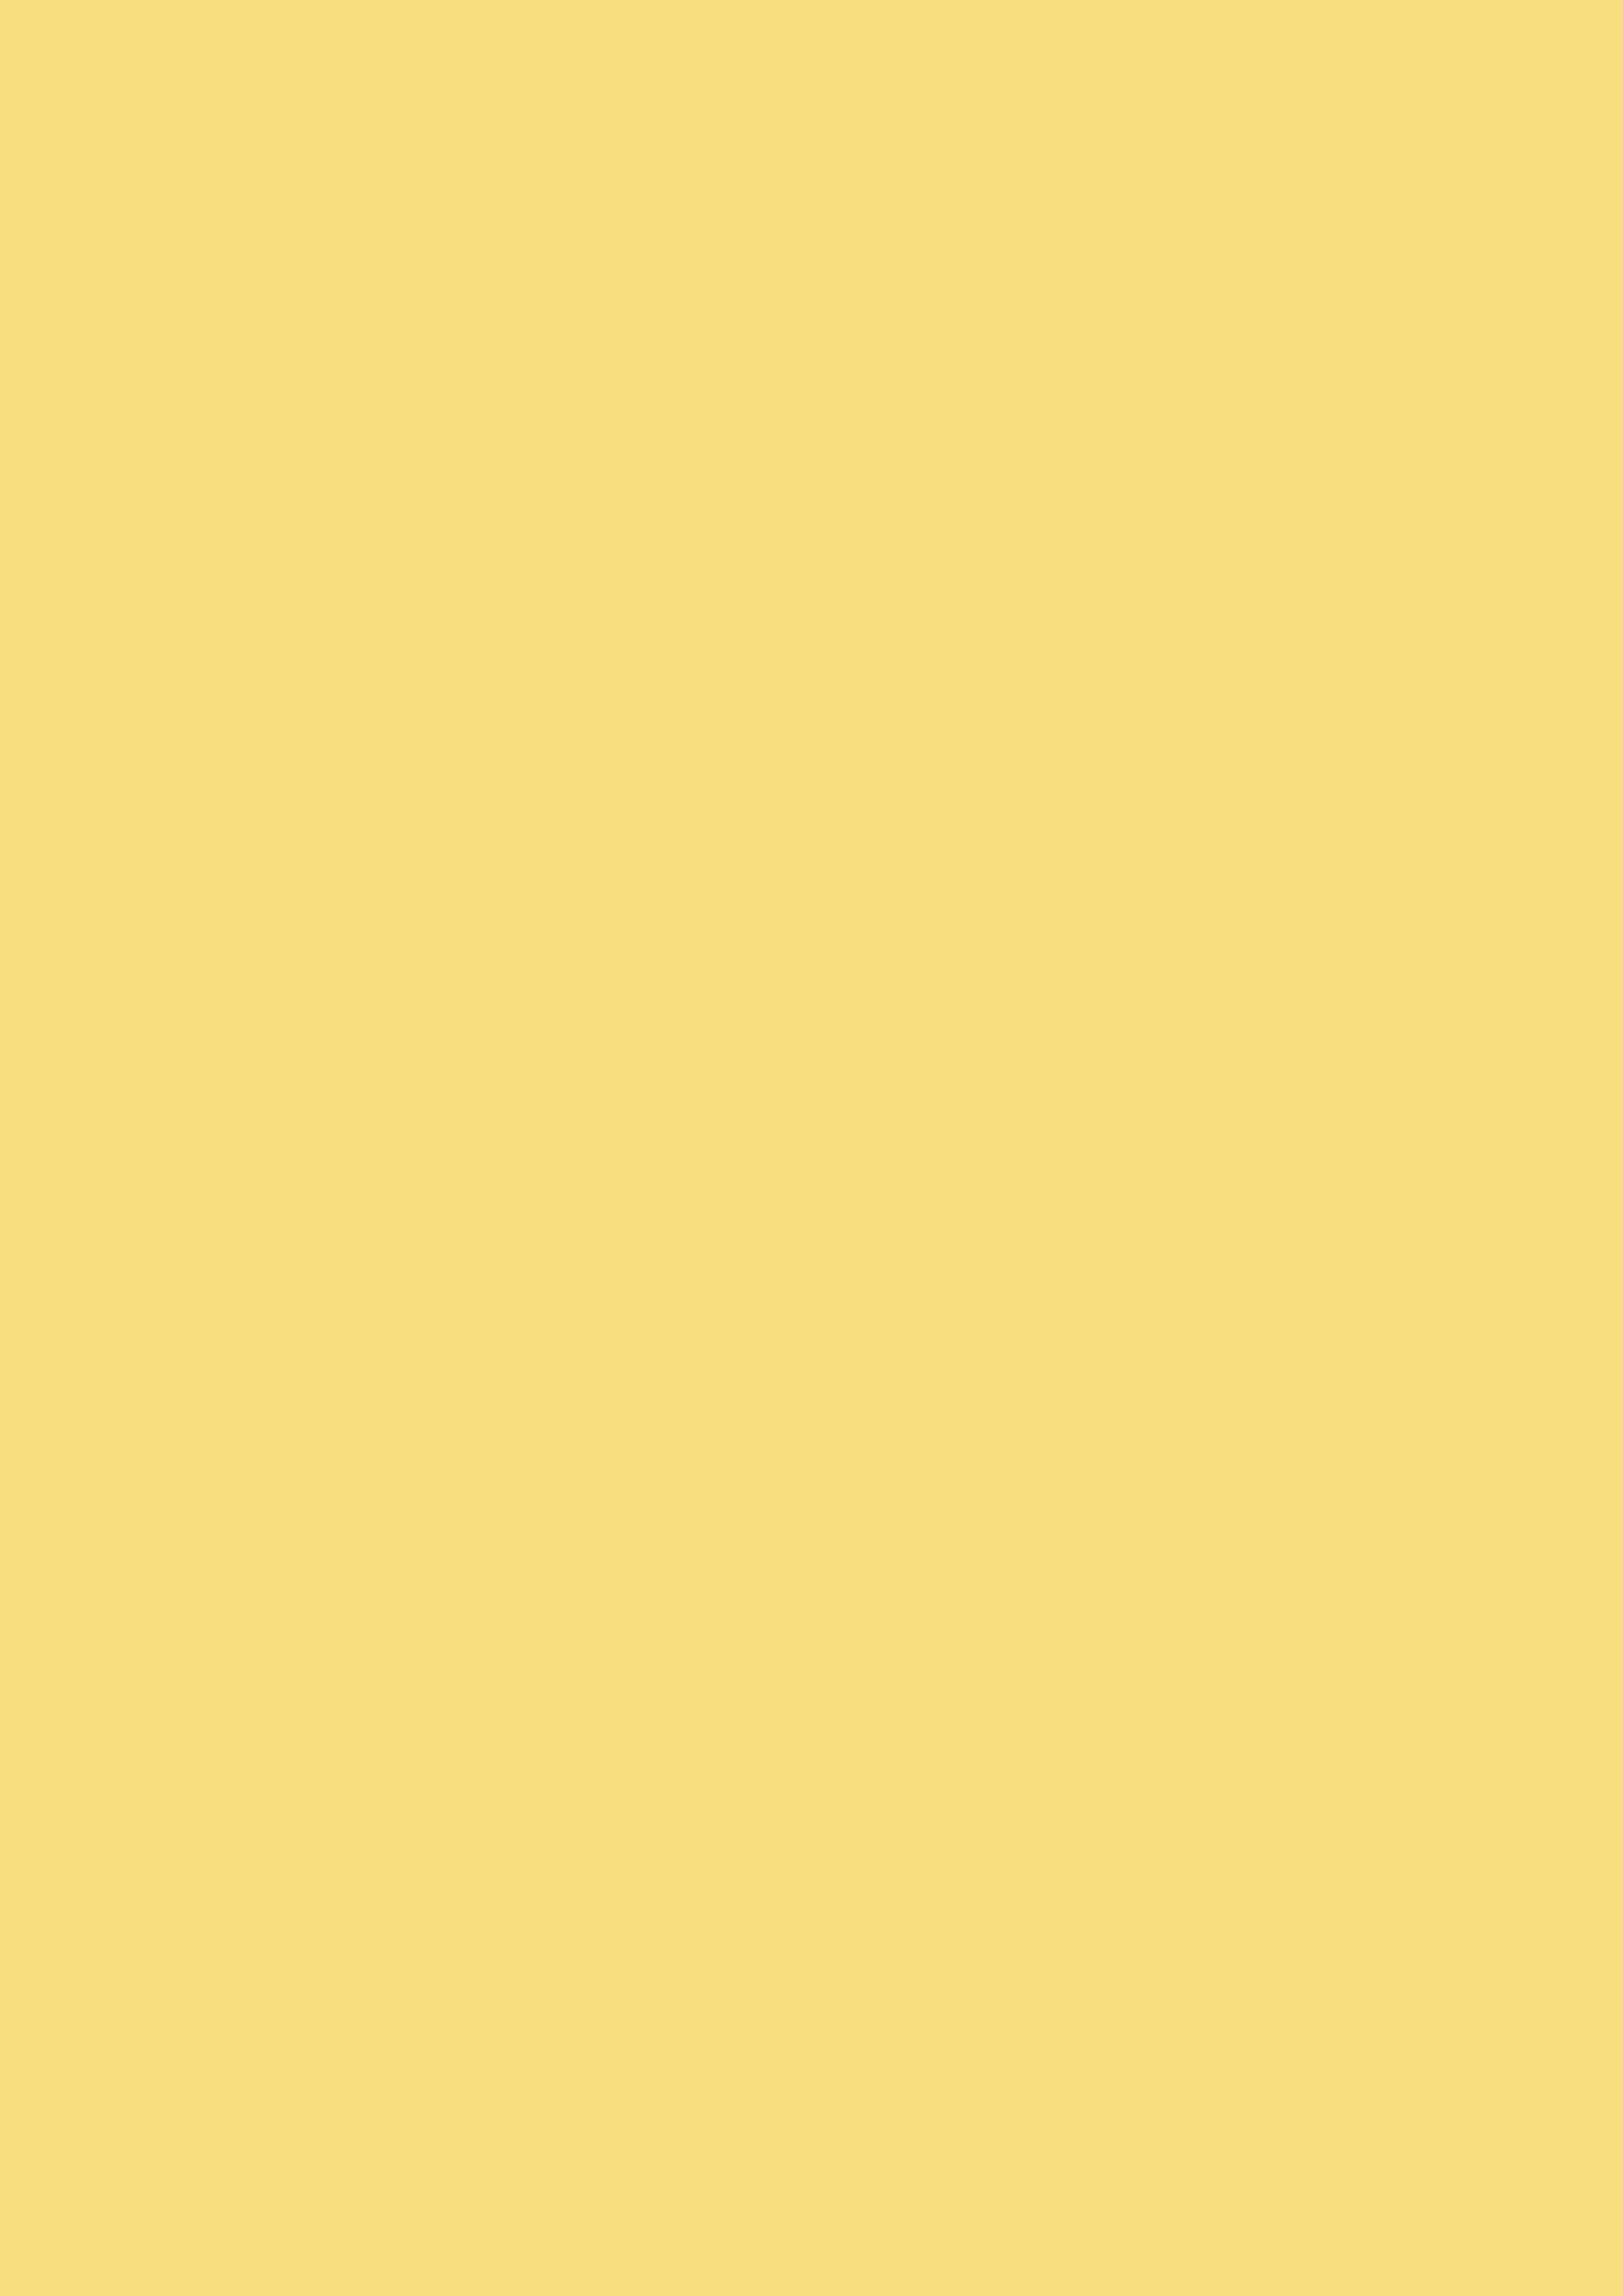 2480x3508 Mellow Yellow Solid Color Background